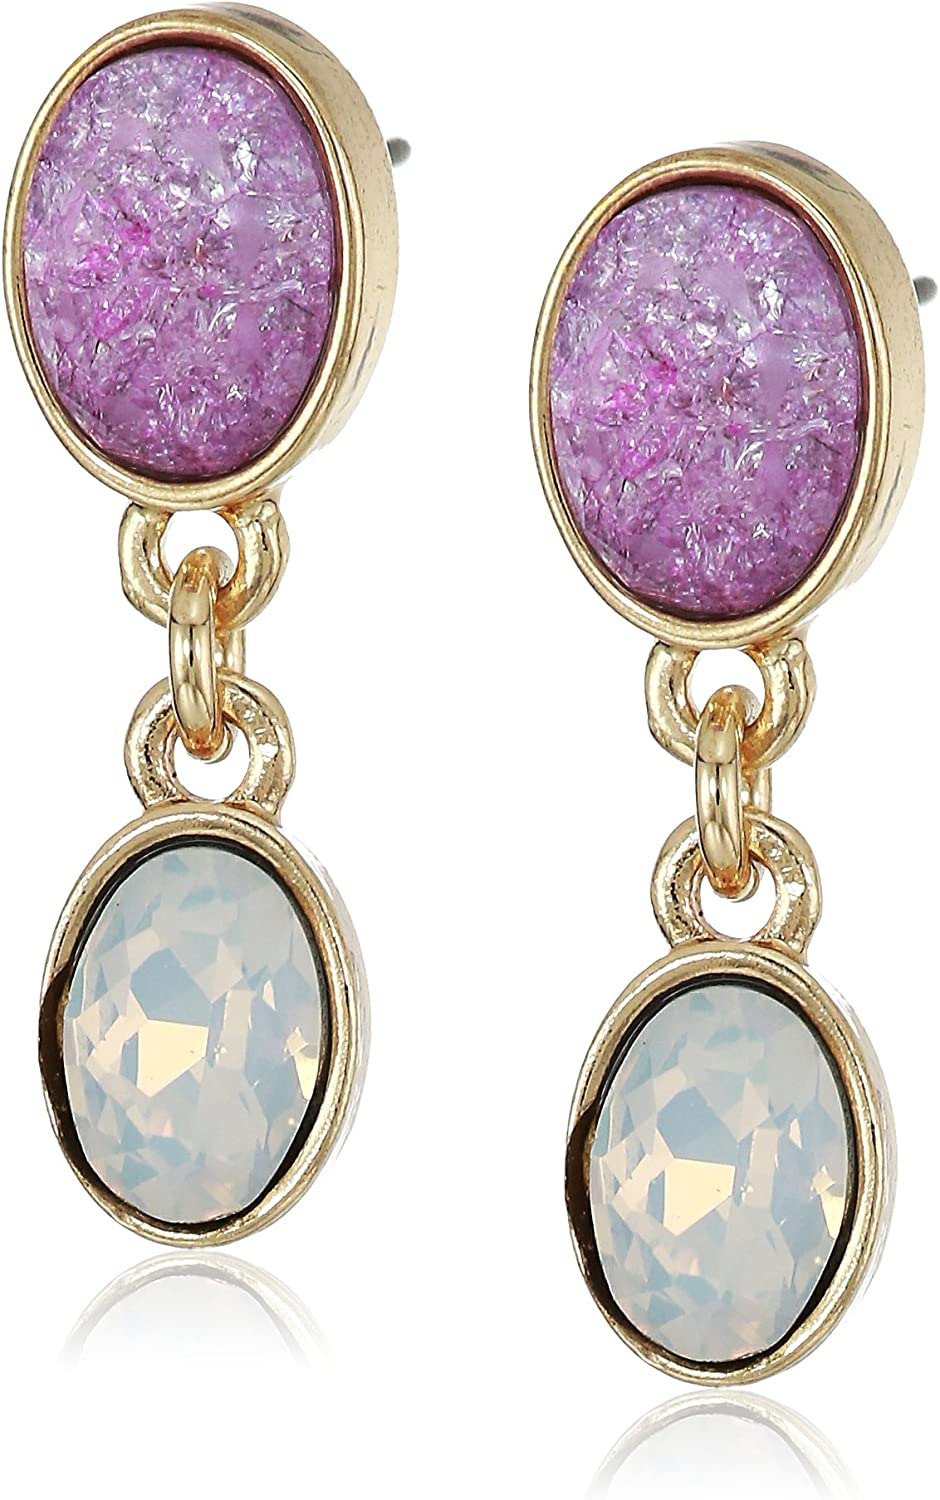 Laundry by Shelli Segal Women's Double Post Drop Earrings, Lilac, One Size